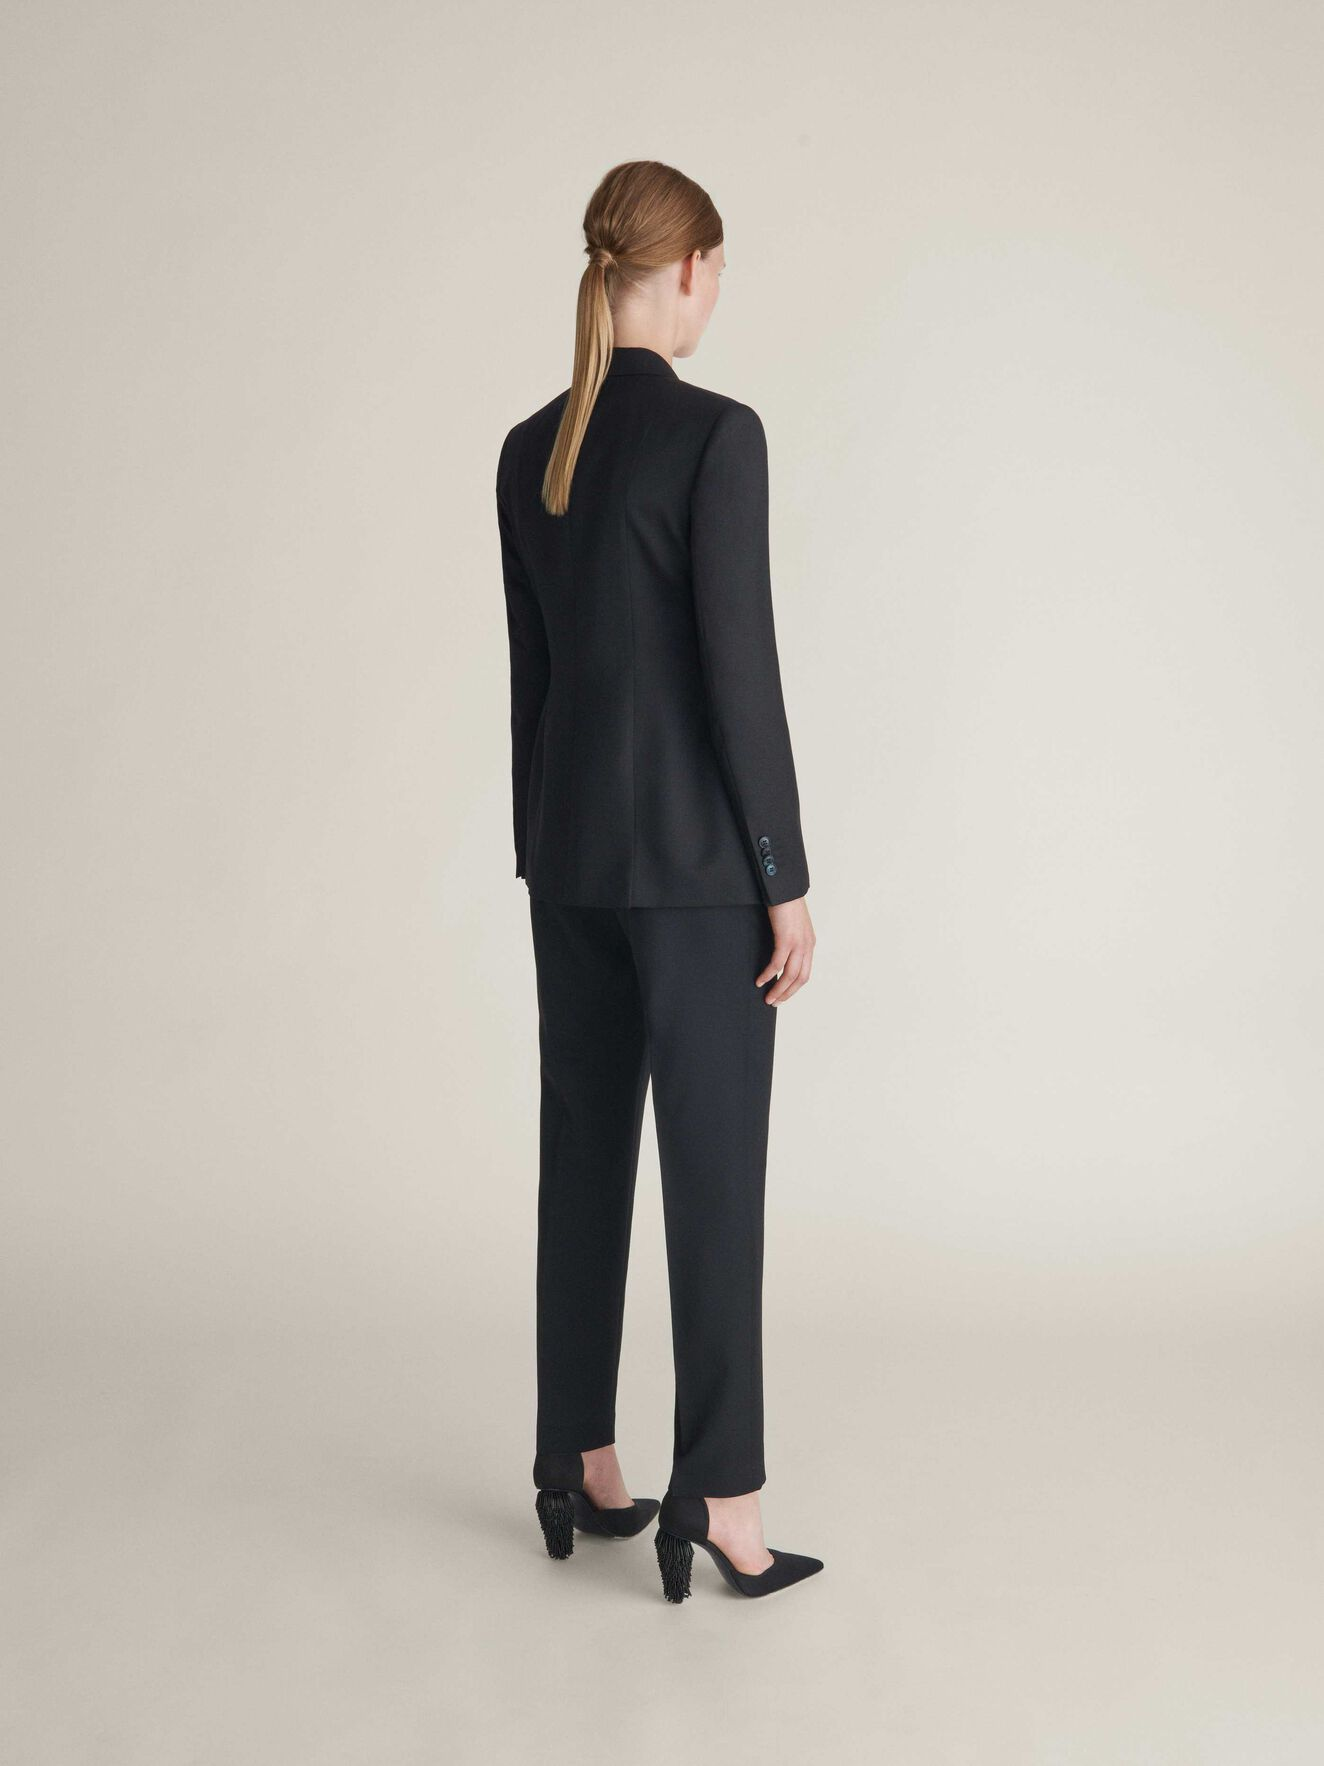 Seanessa 2 Trousers in Black from Tiger of Sweden